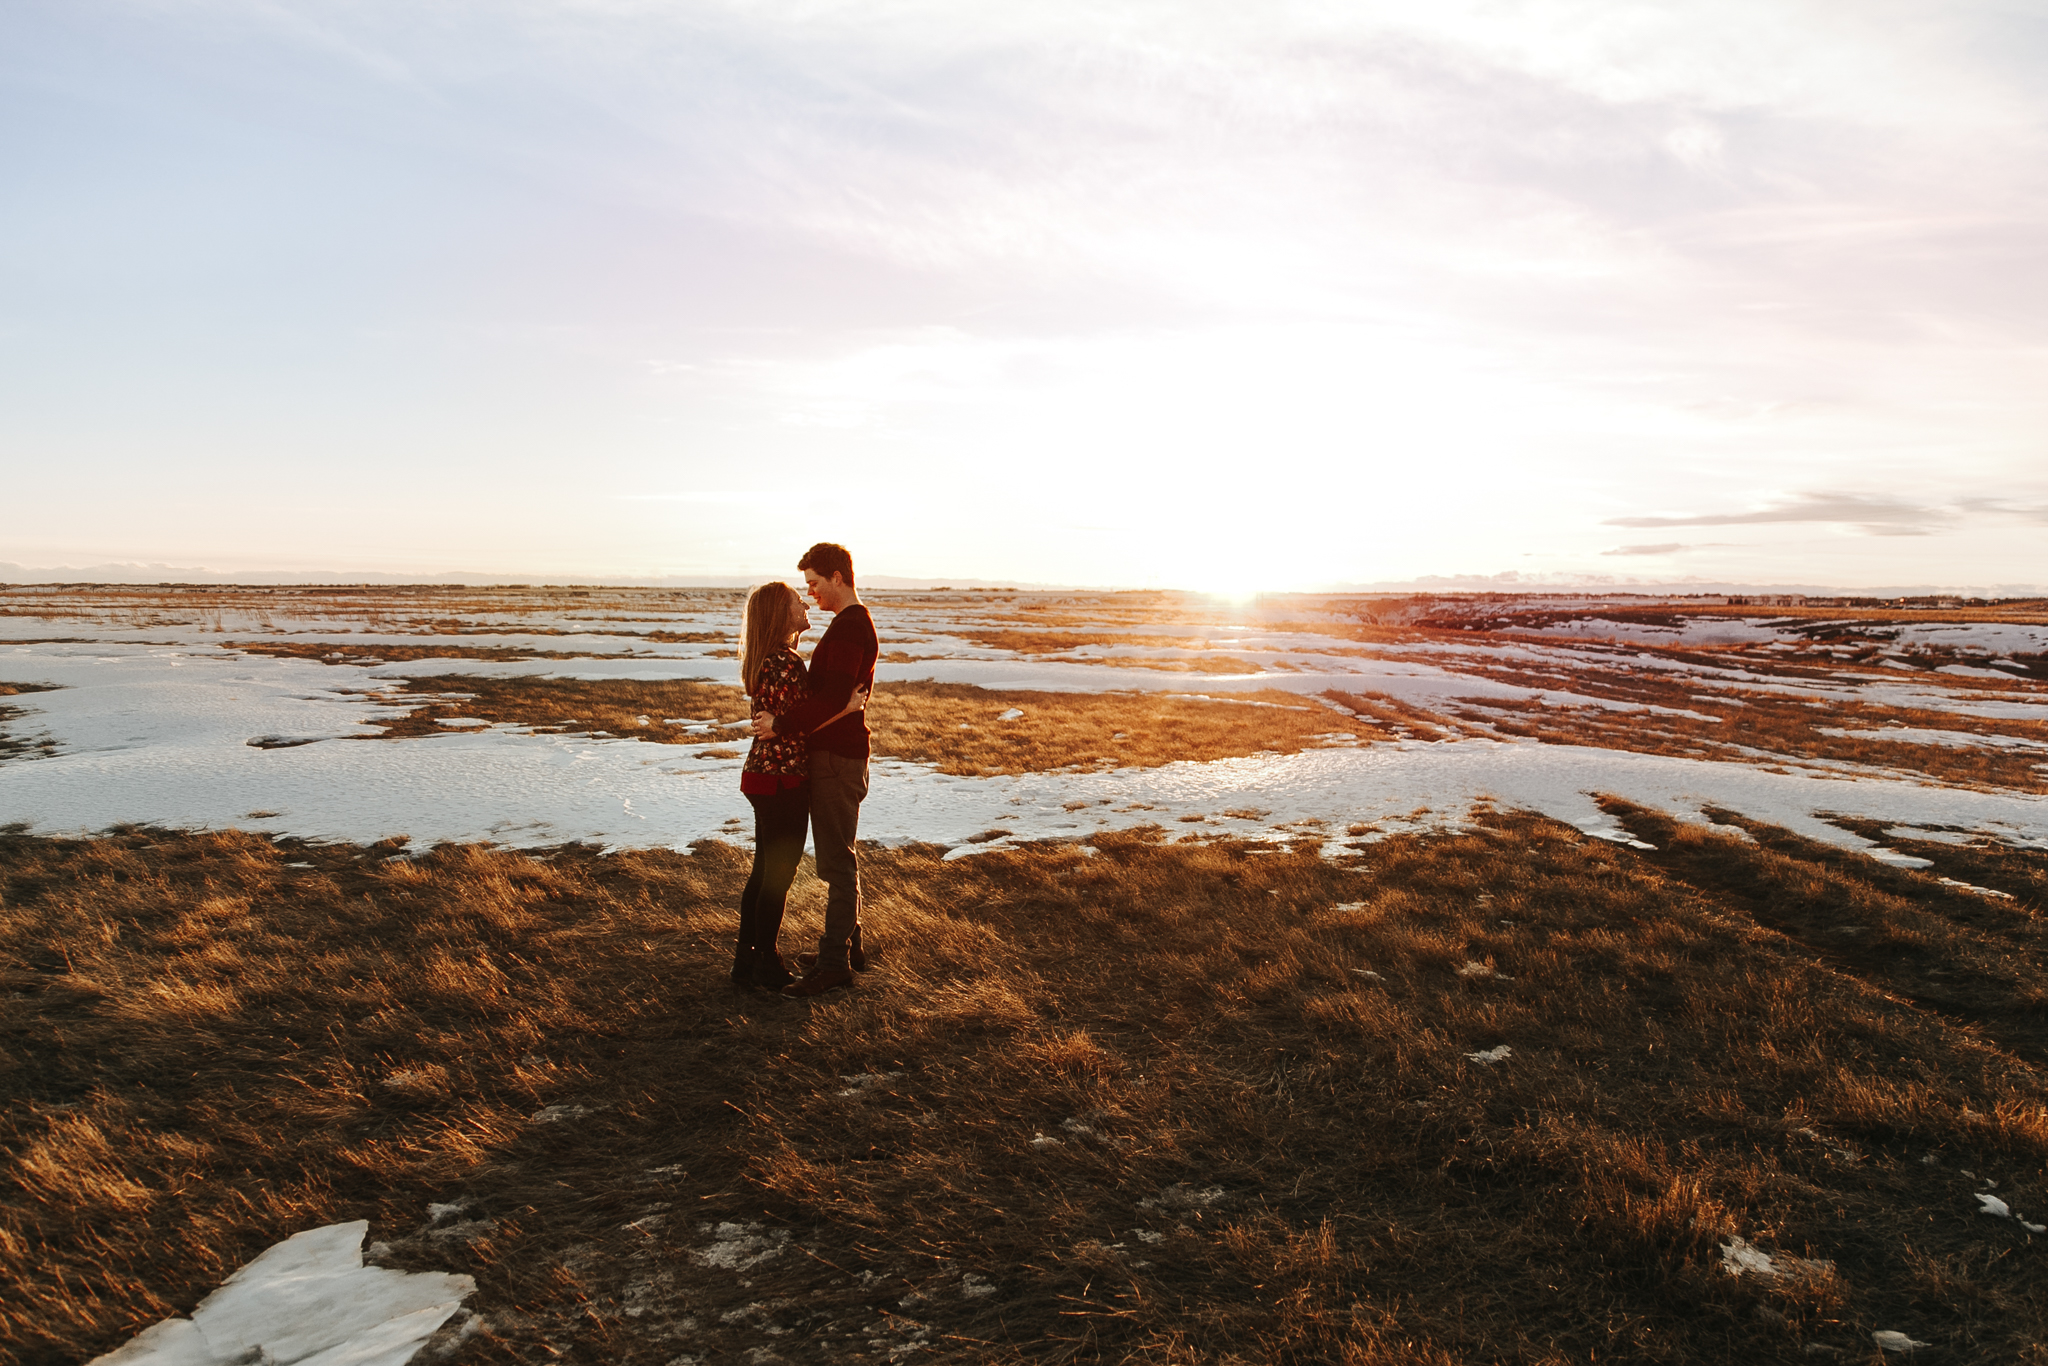 lethbridge-photographer-love-and-be-loved-photography-wedding-engagement-coulees-stuart-lacey-pavan-park-photo-image-picture-61.jpg